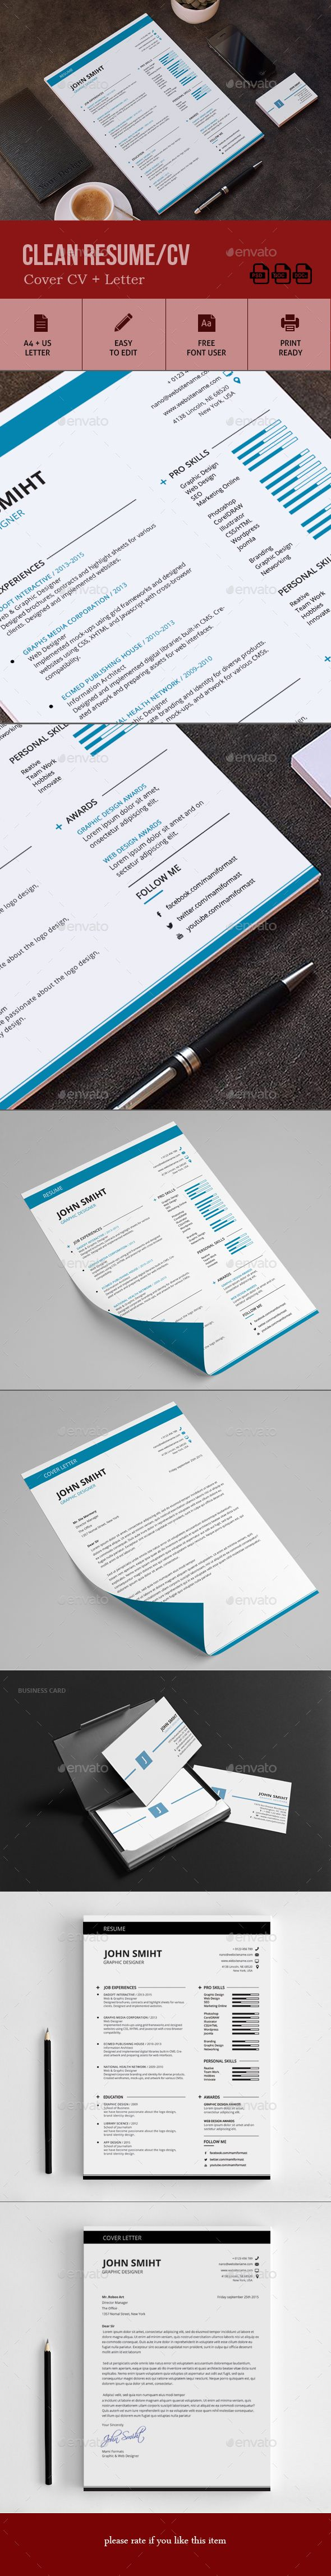 Resume Template 599 best CvResumesPortfolio images on